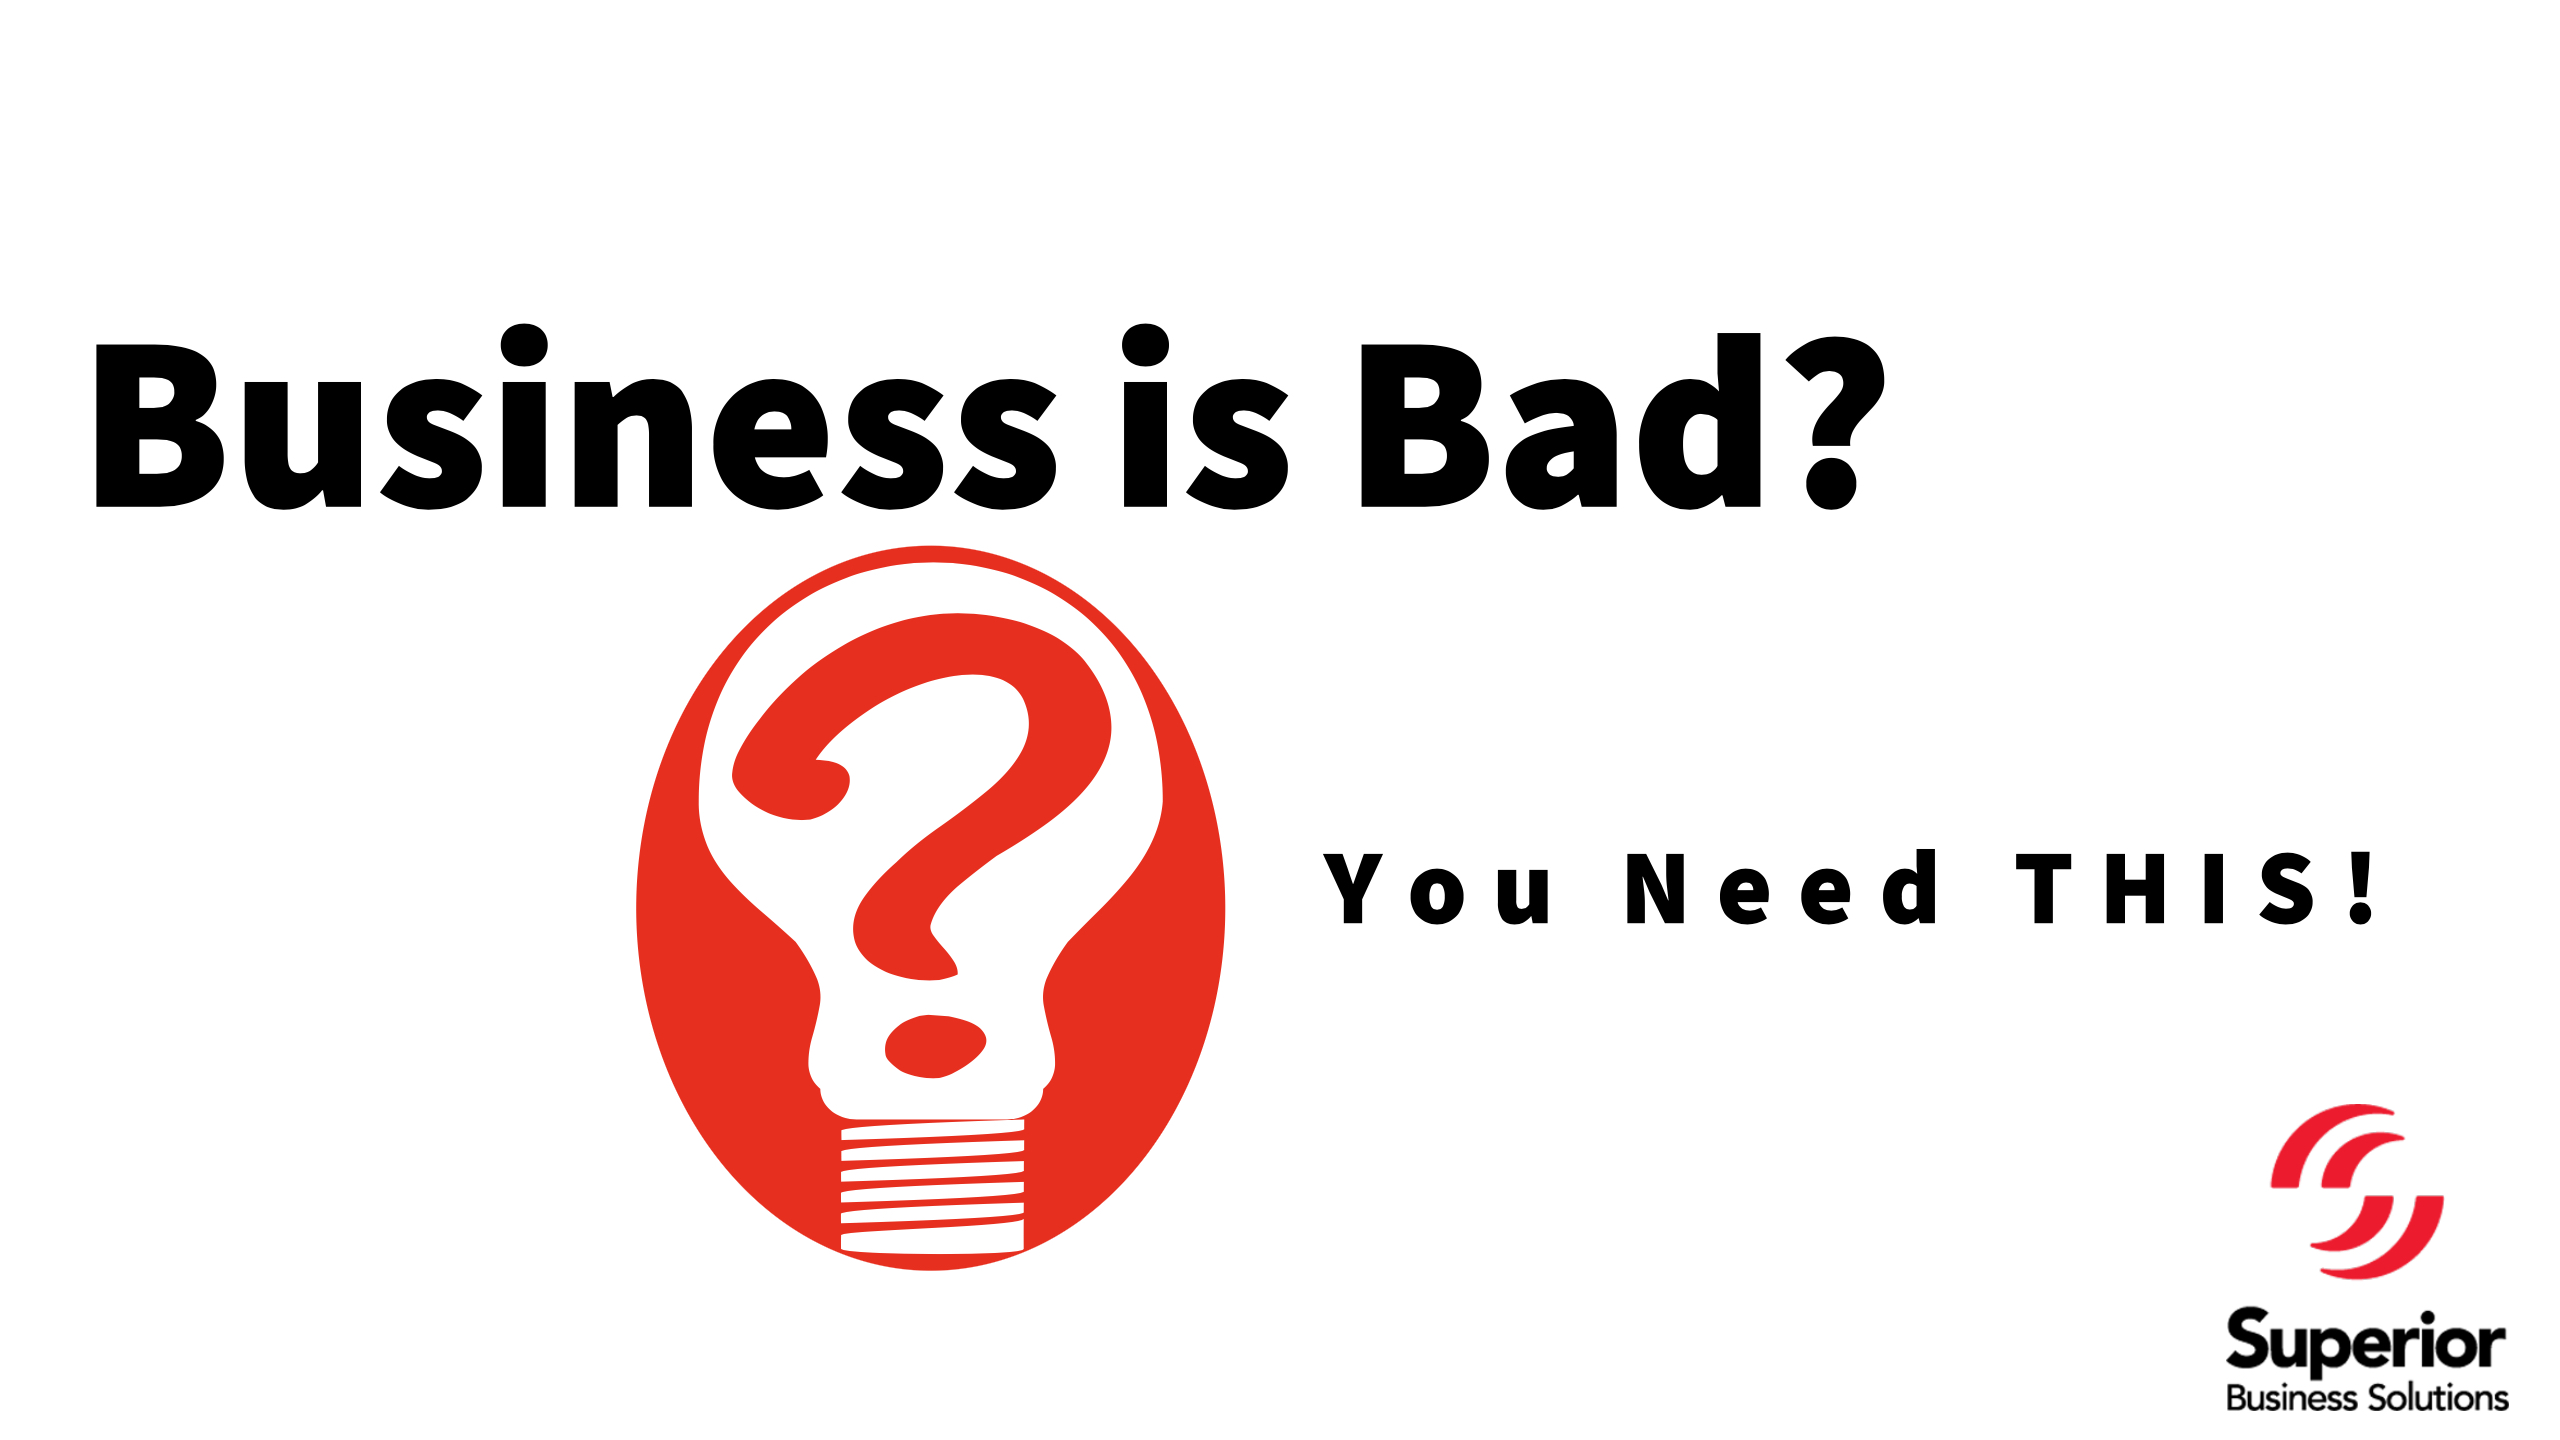 Business is BAD? You Need This